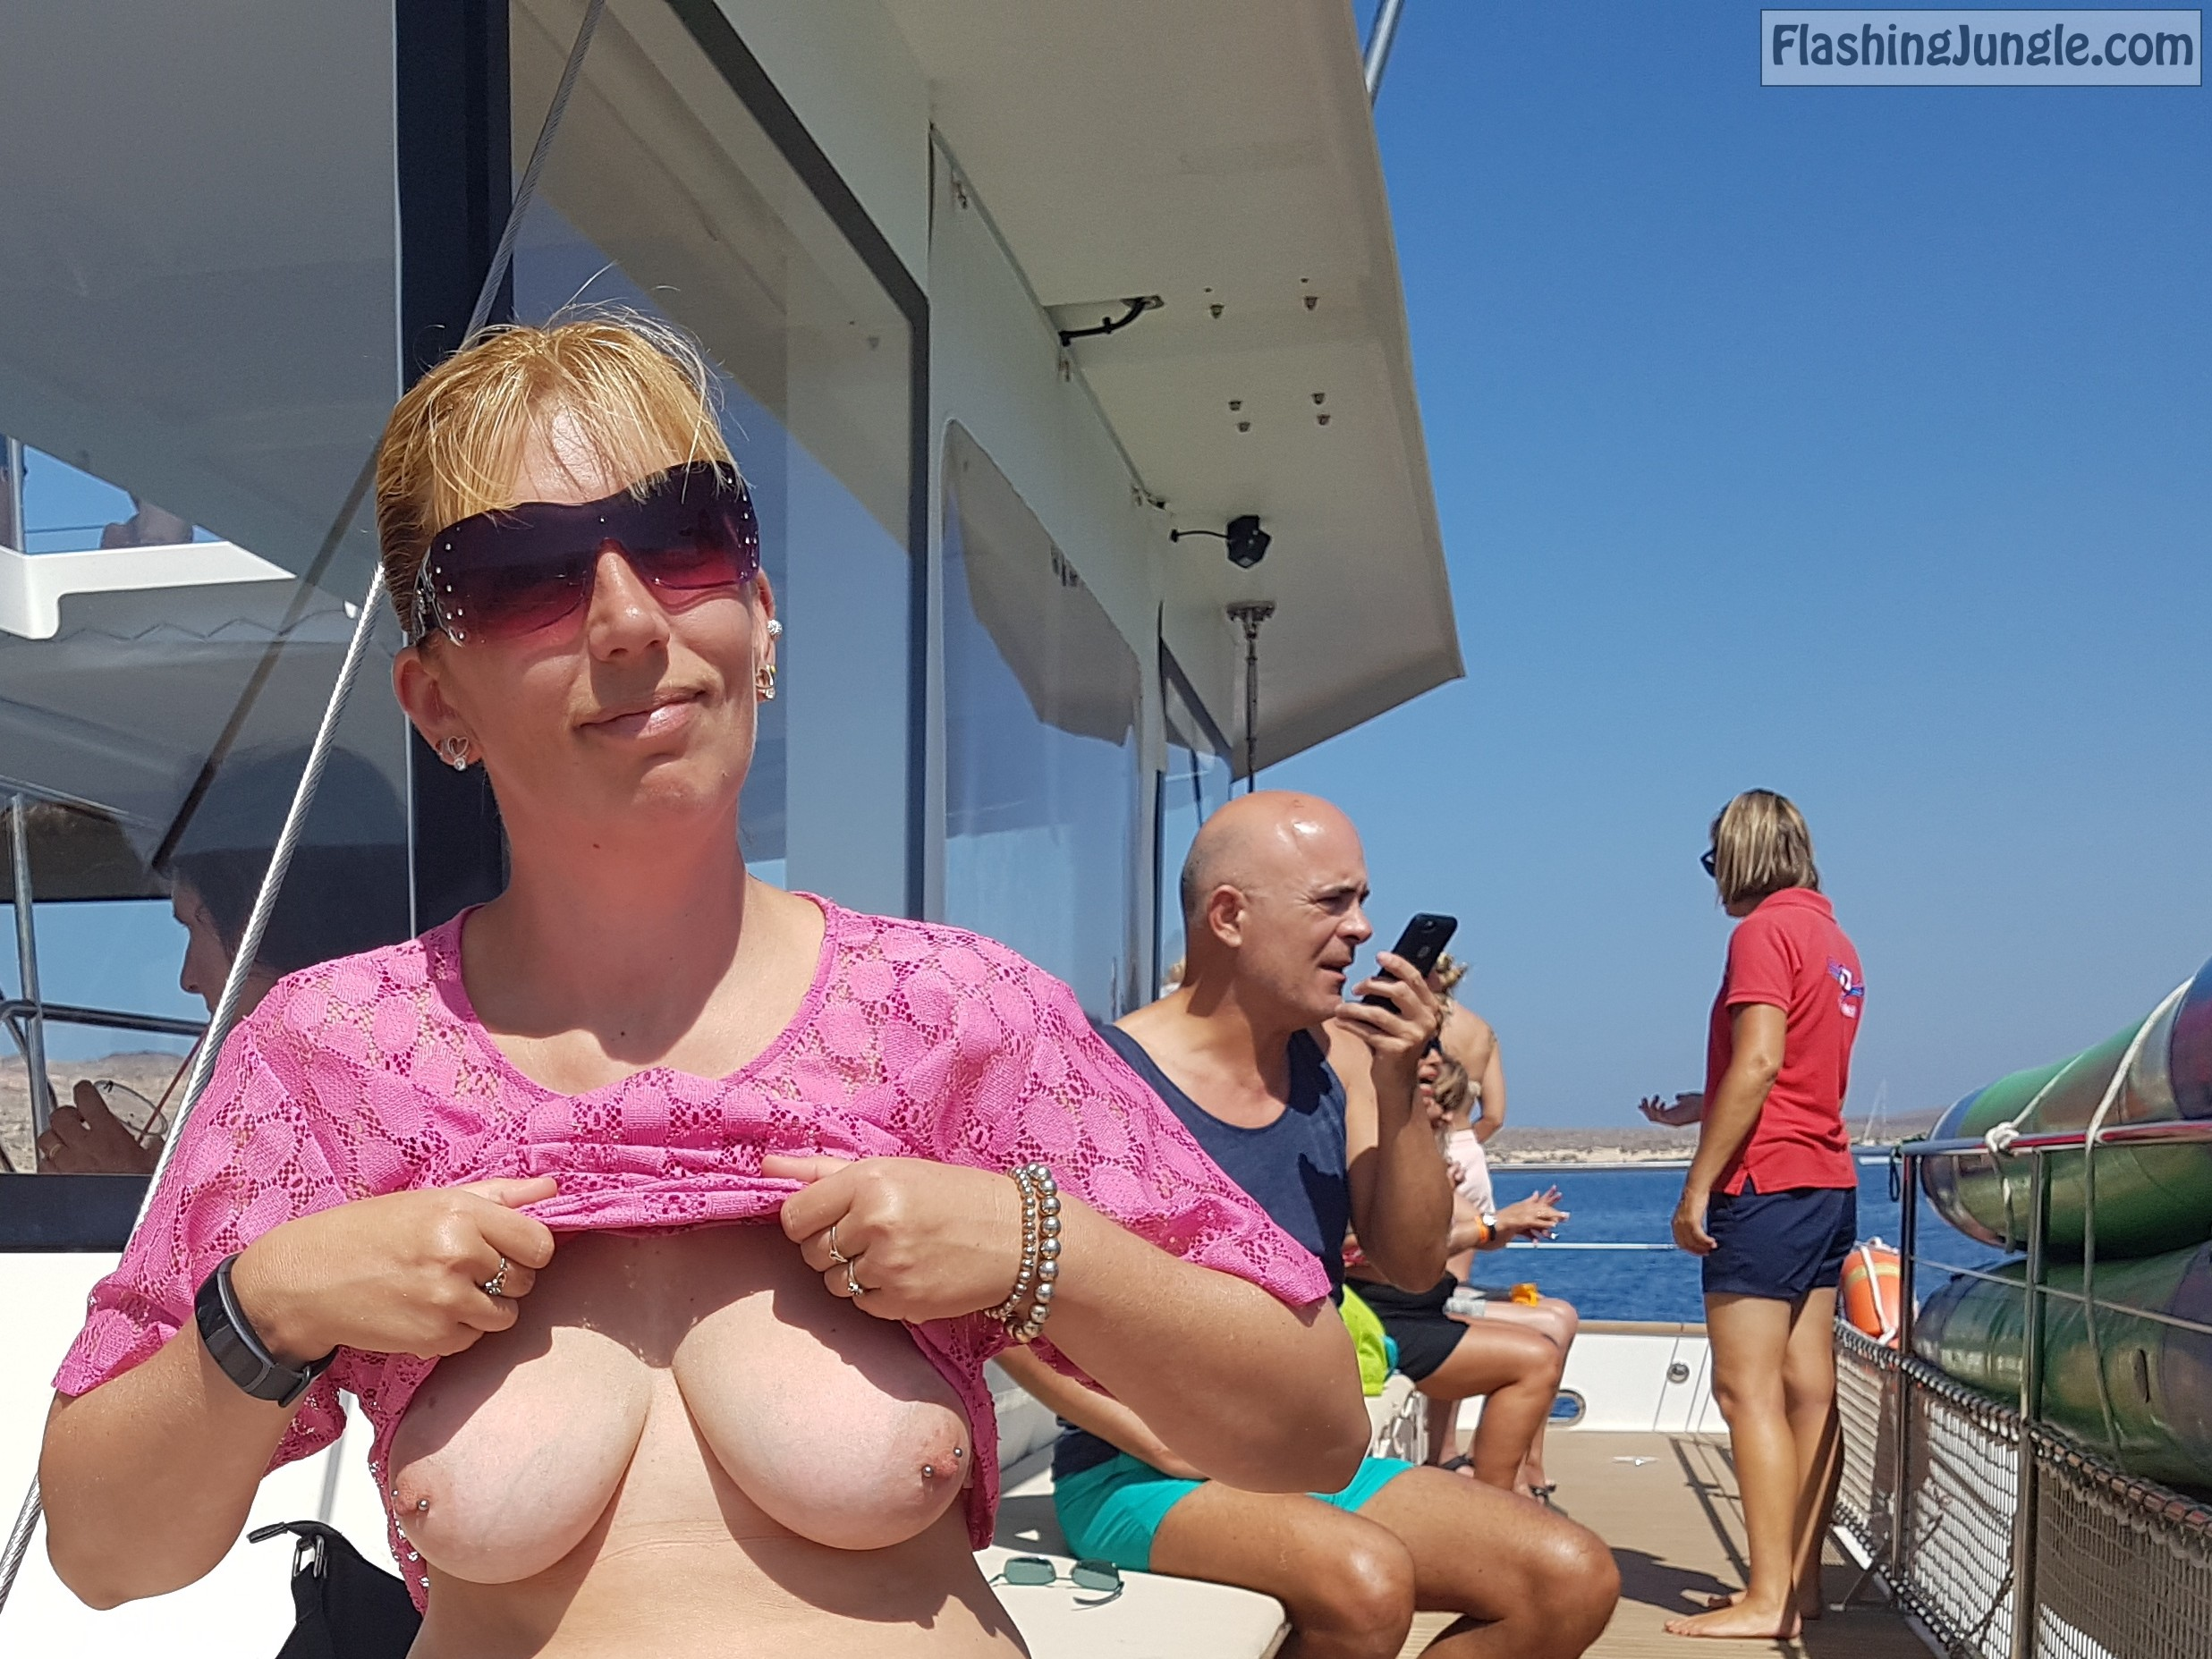 just some of me flashing   KittyD real nudity public flashing milf pics howife boobs flash